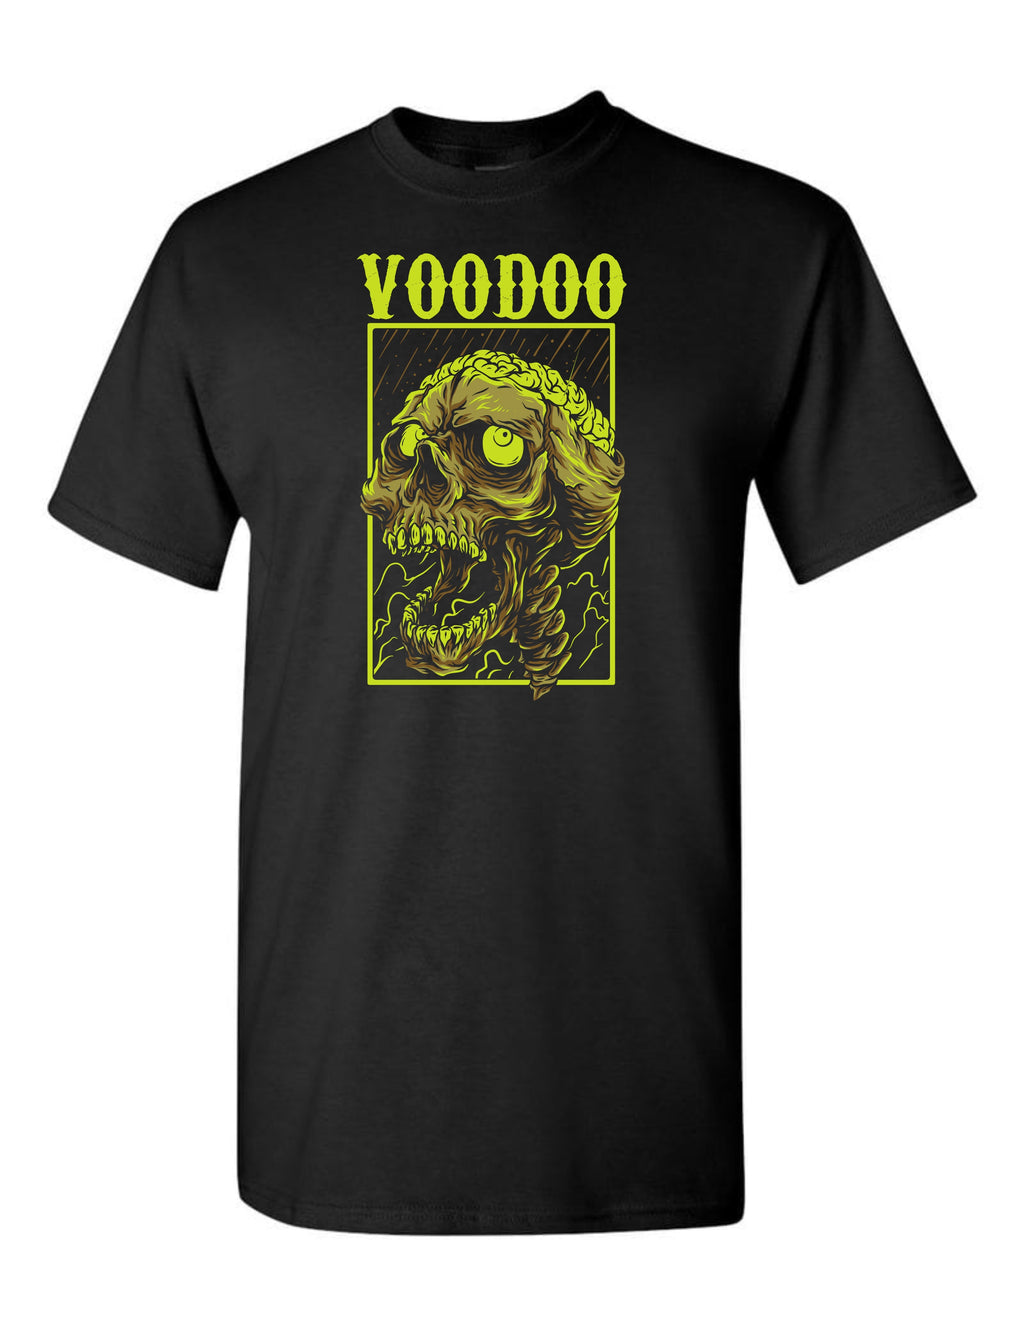 Brains - Voodoo Graphx